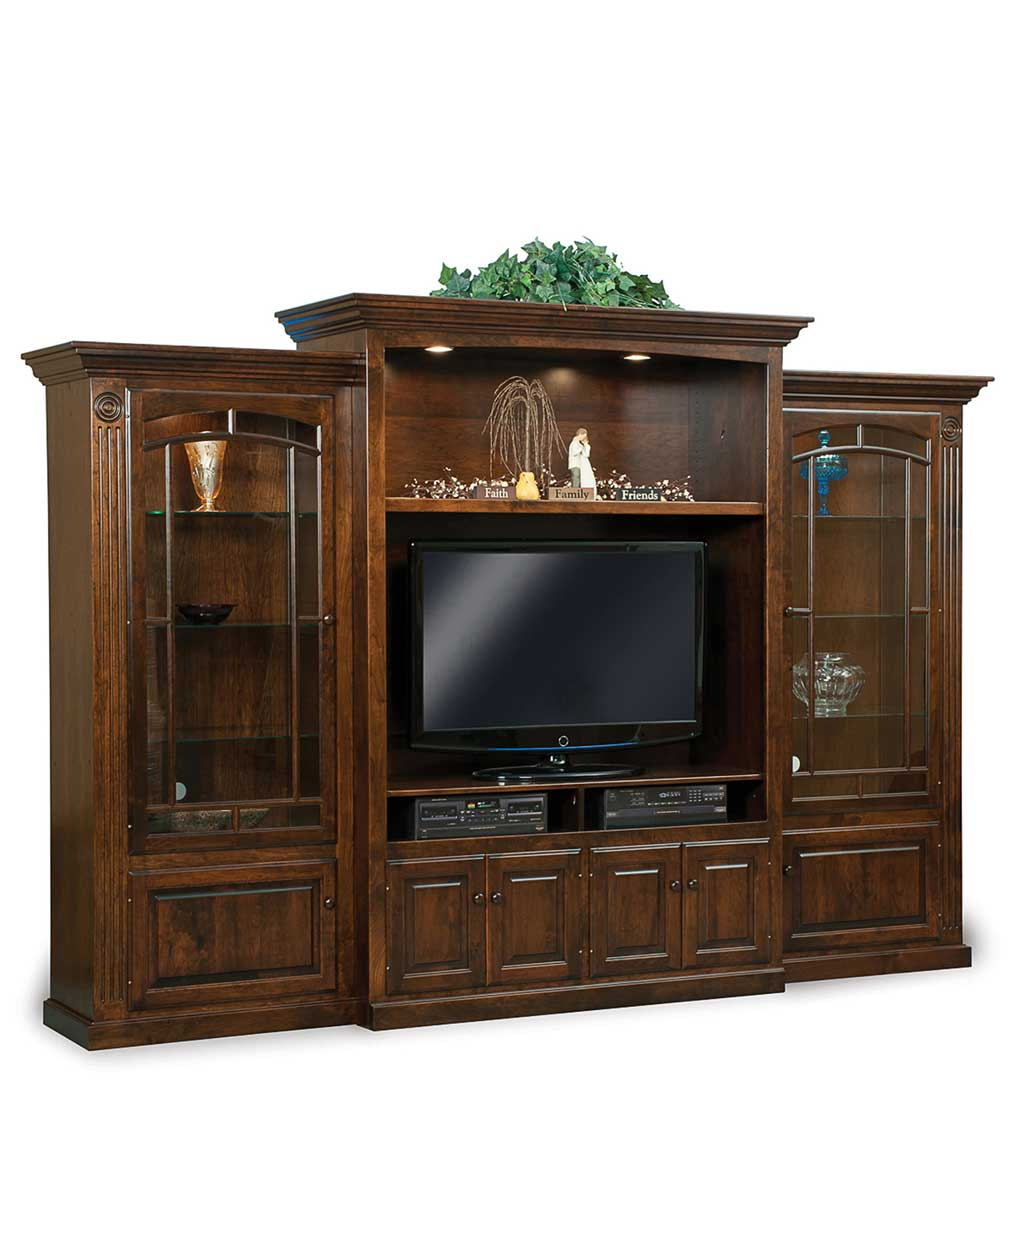 Victorian 3 piece wall unit amish direct furniture - Wall units for living room mumbai ...